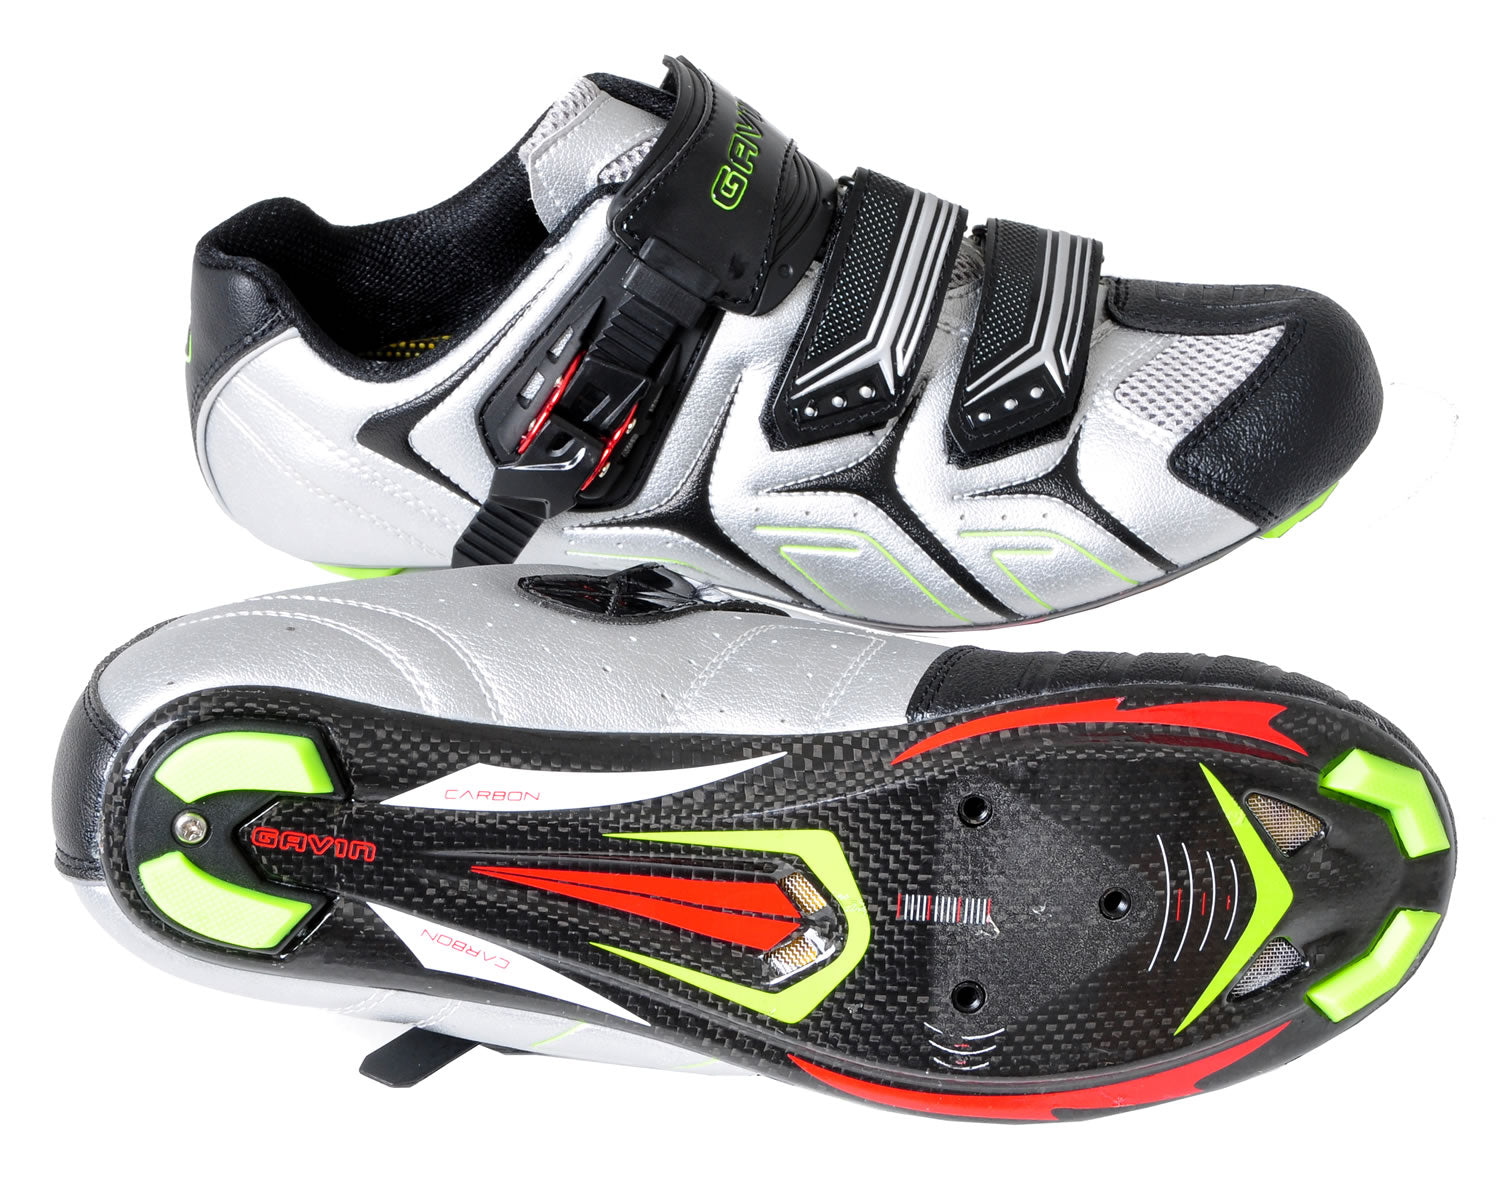 products/525-CARBON-SHOE__01.jpg_5.jpg